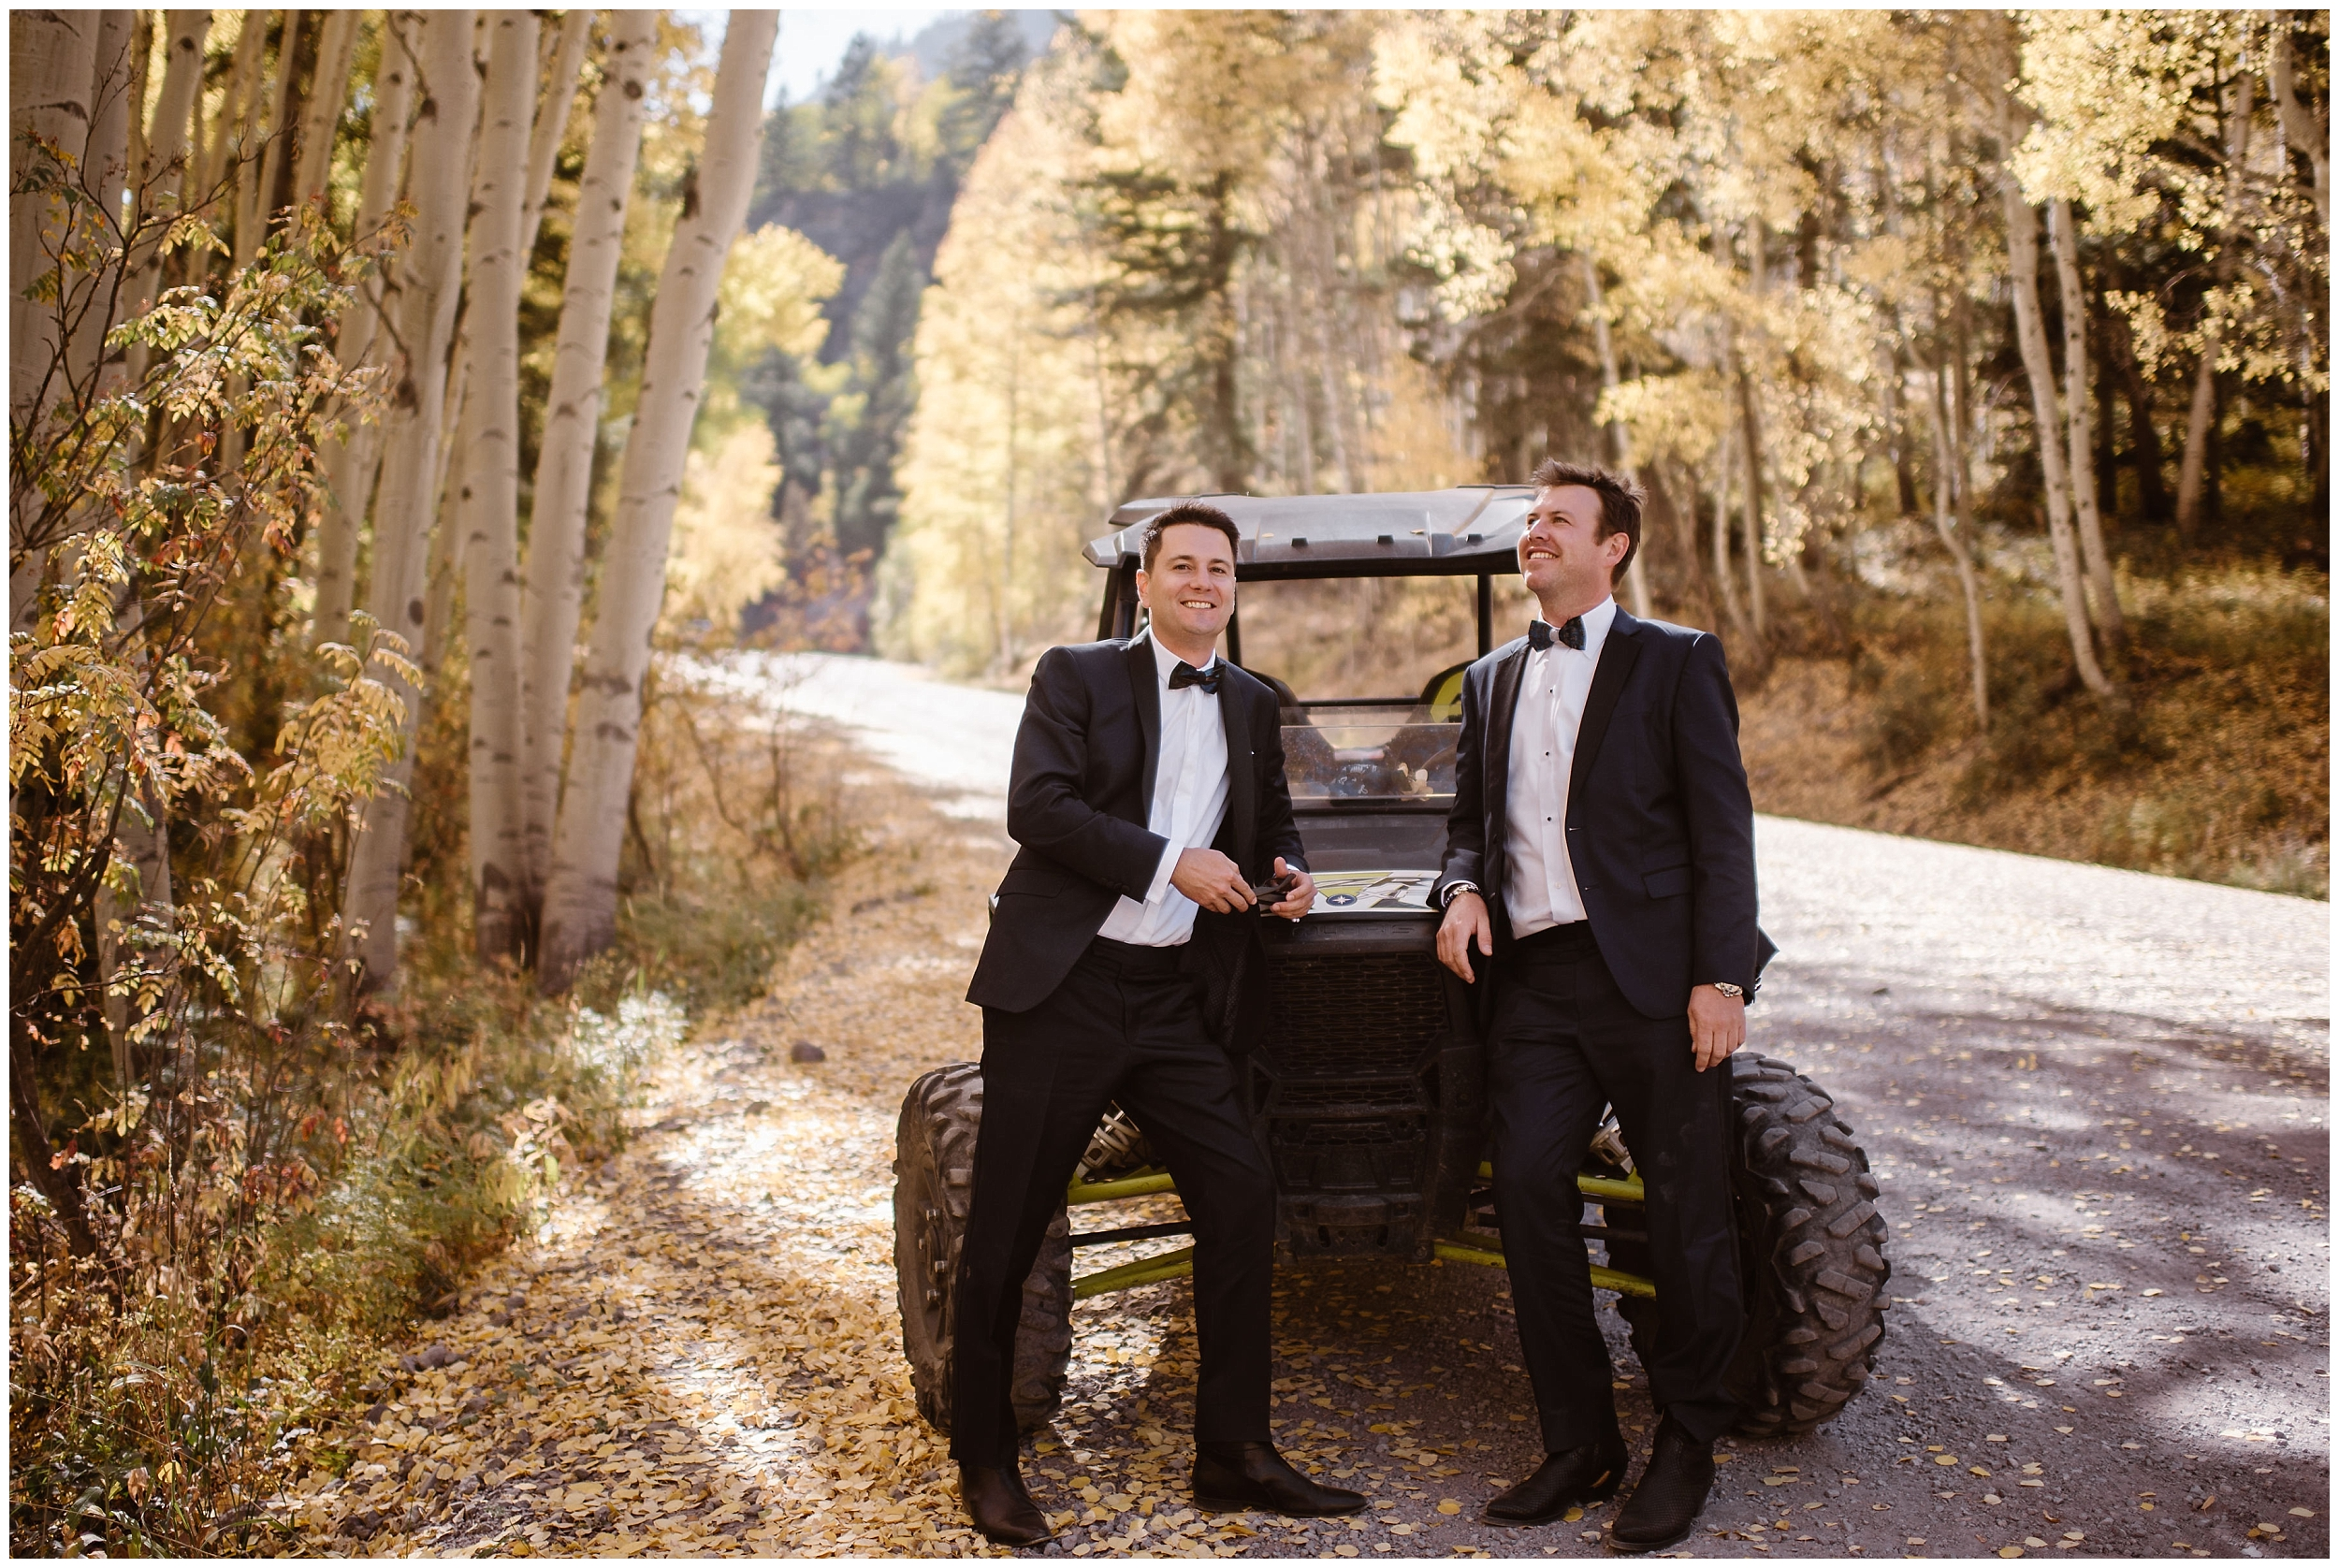 Brian and Ernie, the two grooms, pose in front of their off-road vehicle. The two lean against the side-by-side in their dark suits, fully prepared for their elopement ceremony. The gold and white aspen trees stand out vibrantly all around them.